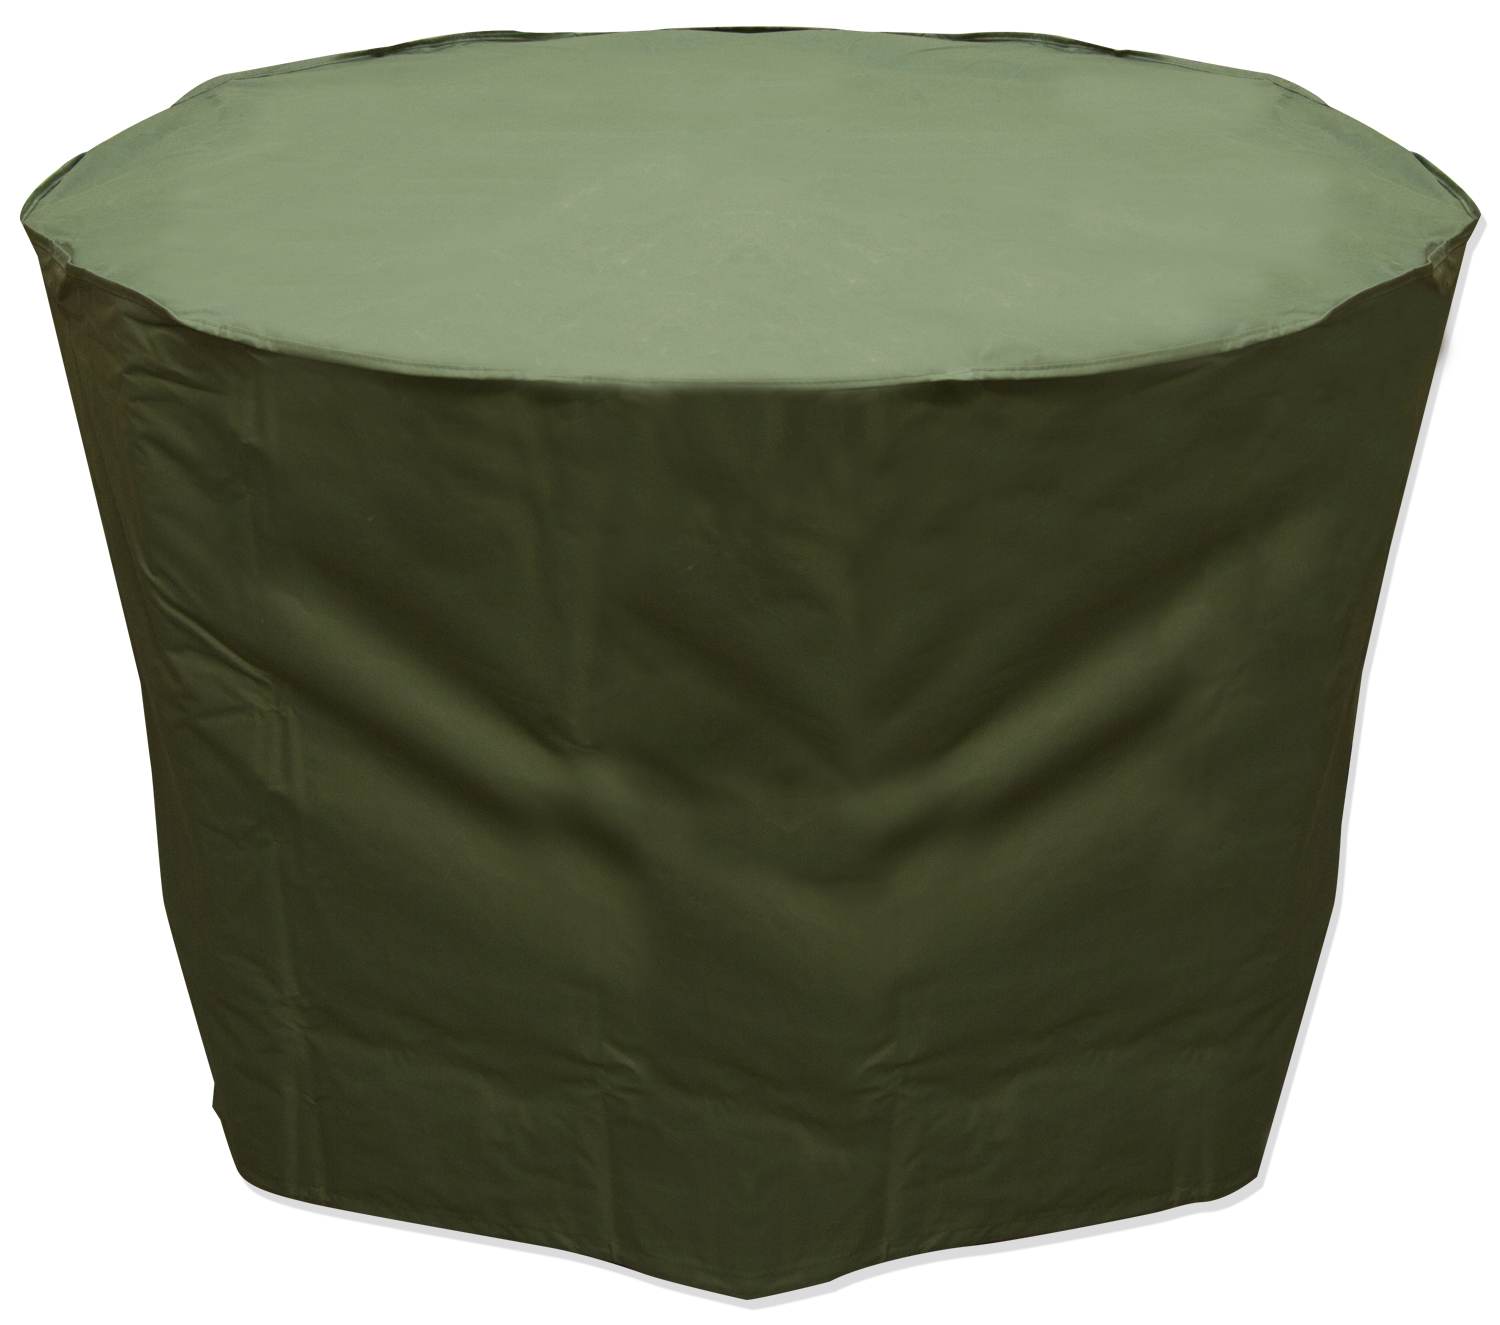 oxbridge green medium round waterproof outdoor garden